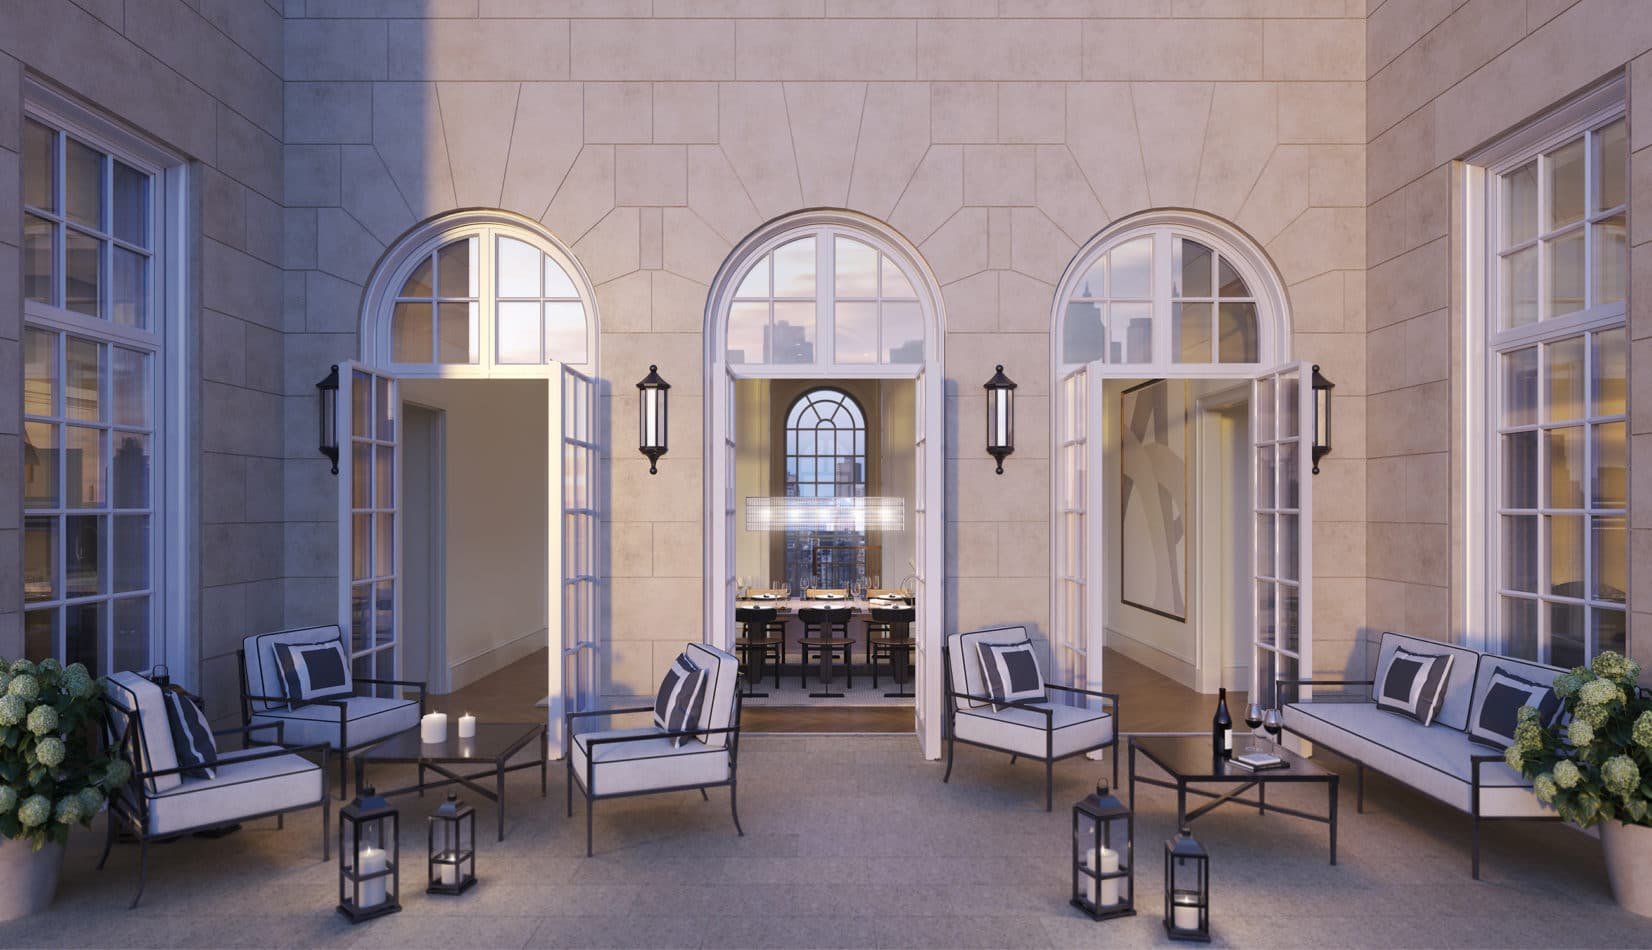 View of penthouse terrace at The Benson condos in New York. Outdoor seating with three doors and two large windows.